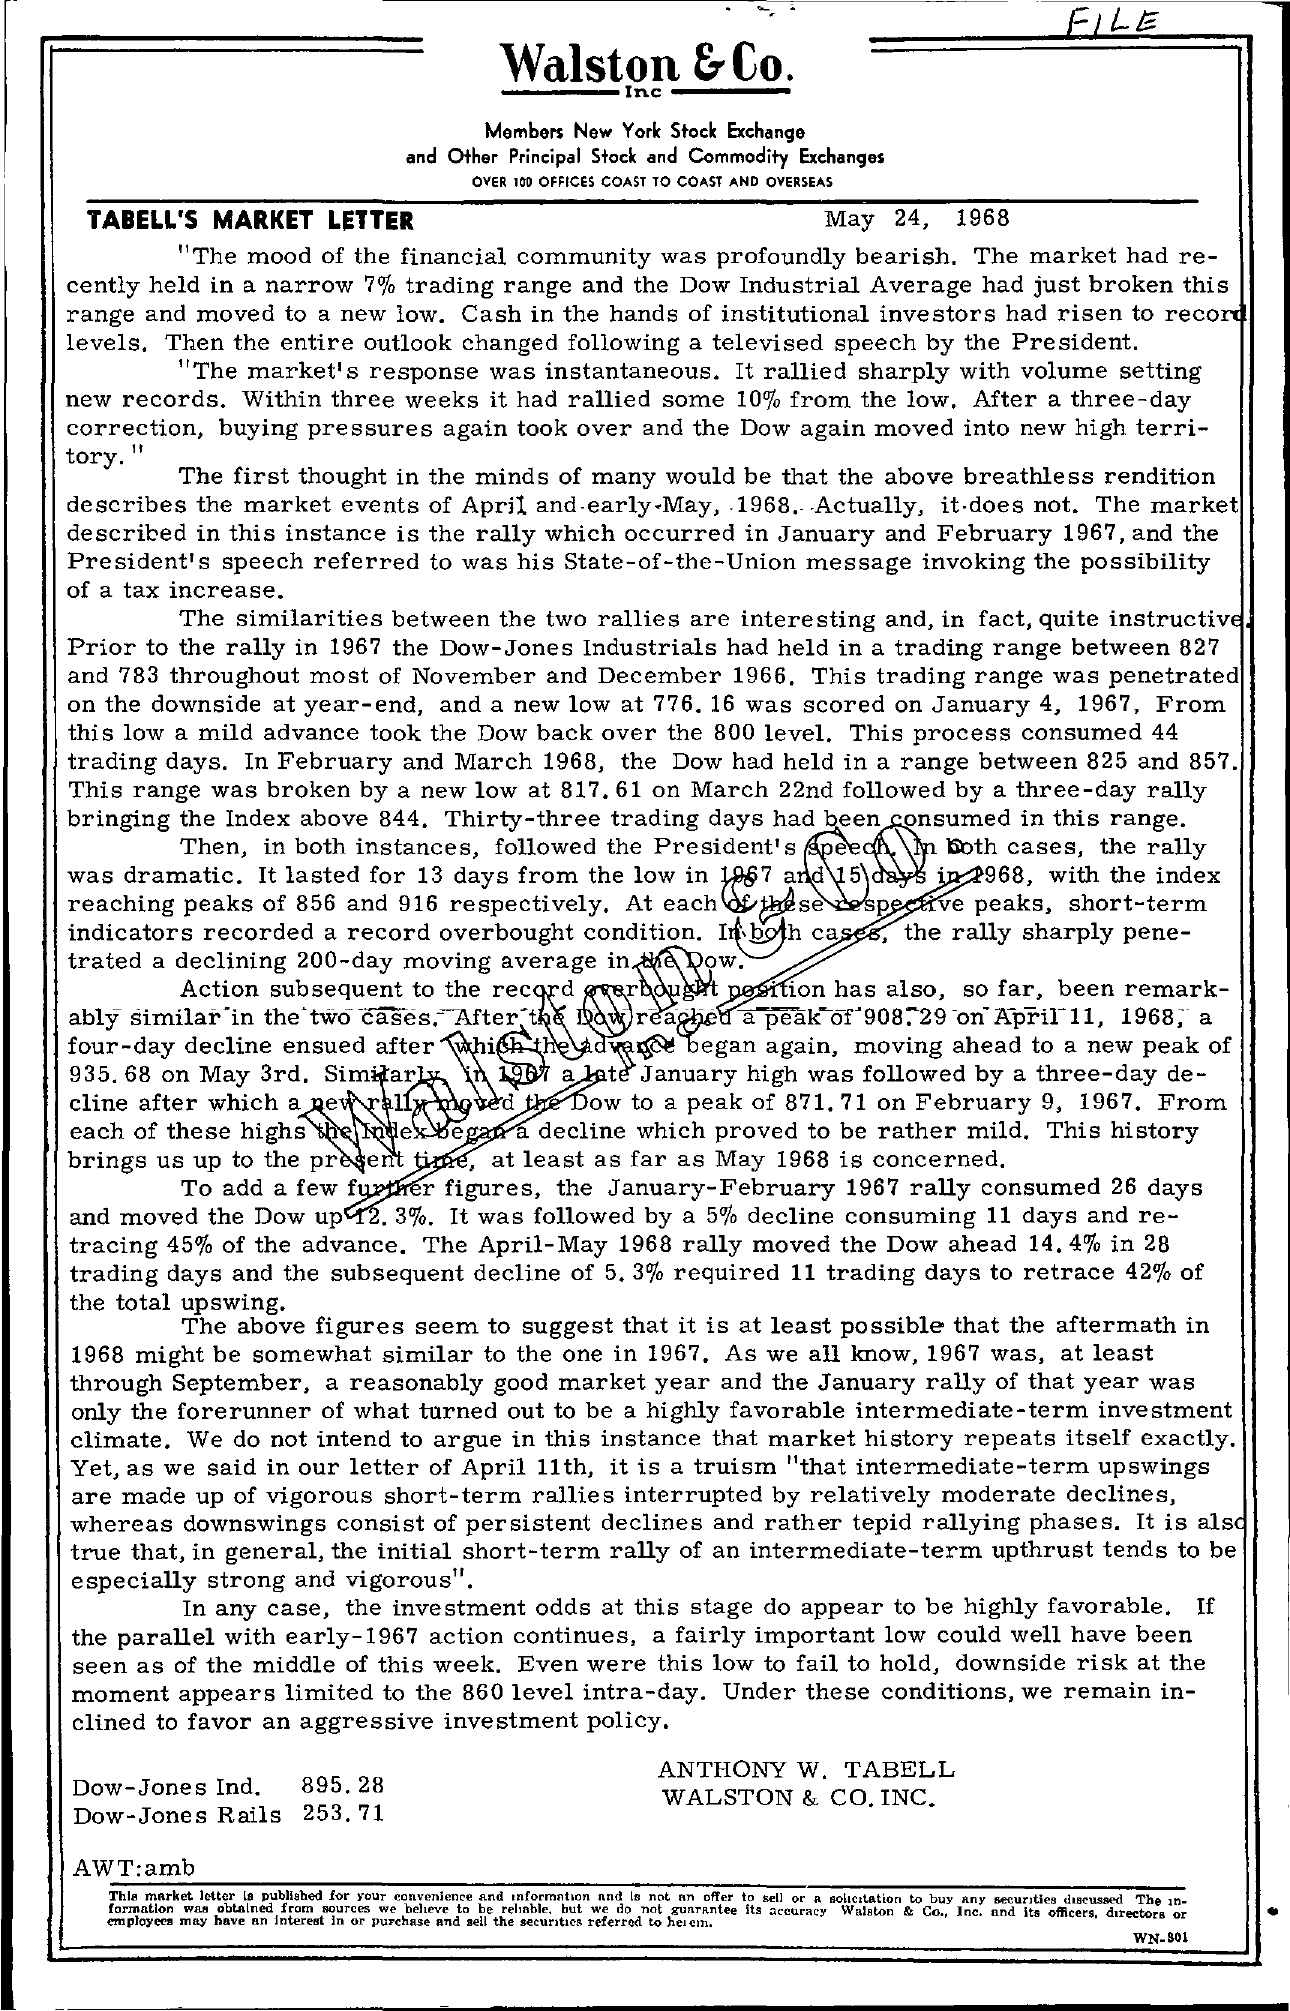 Tabell's Market Letter - May 24, 1968